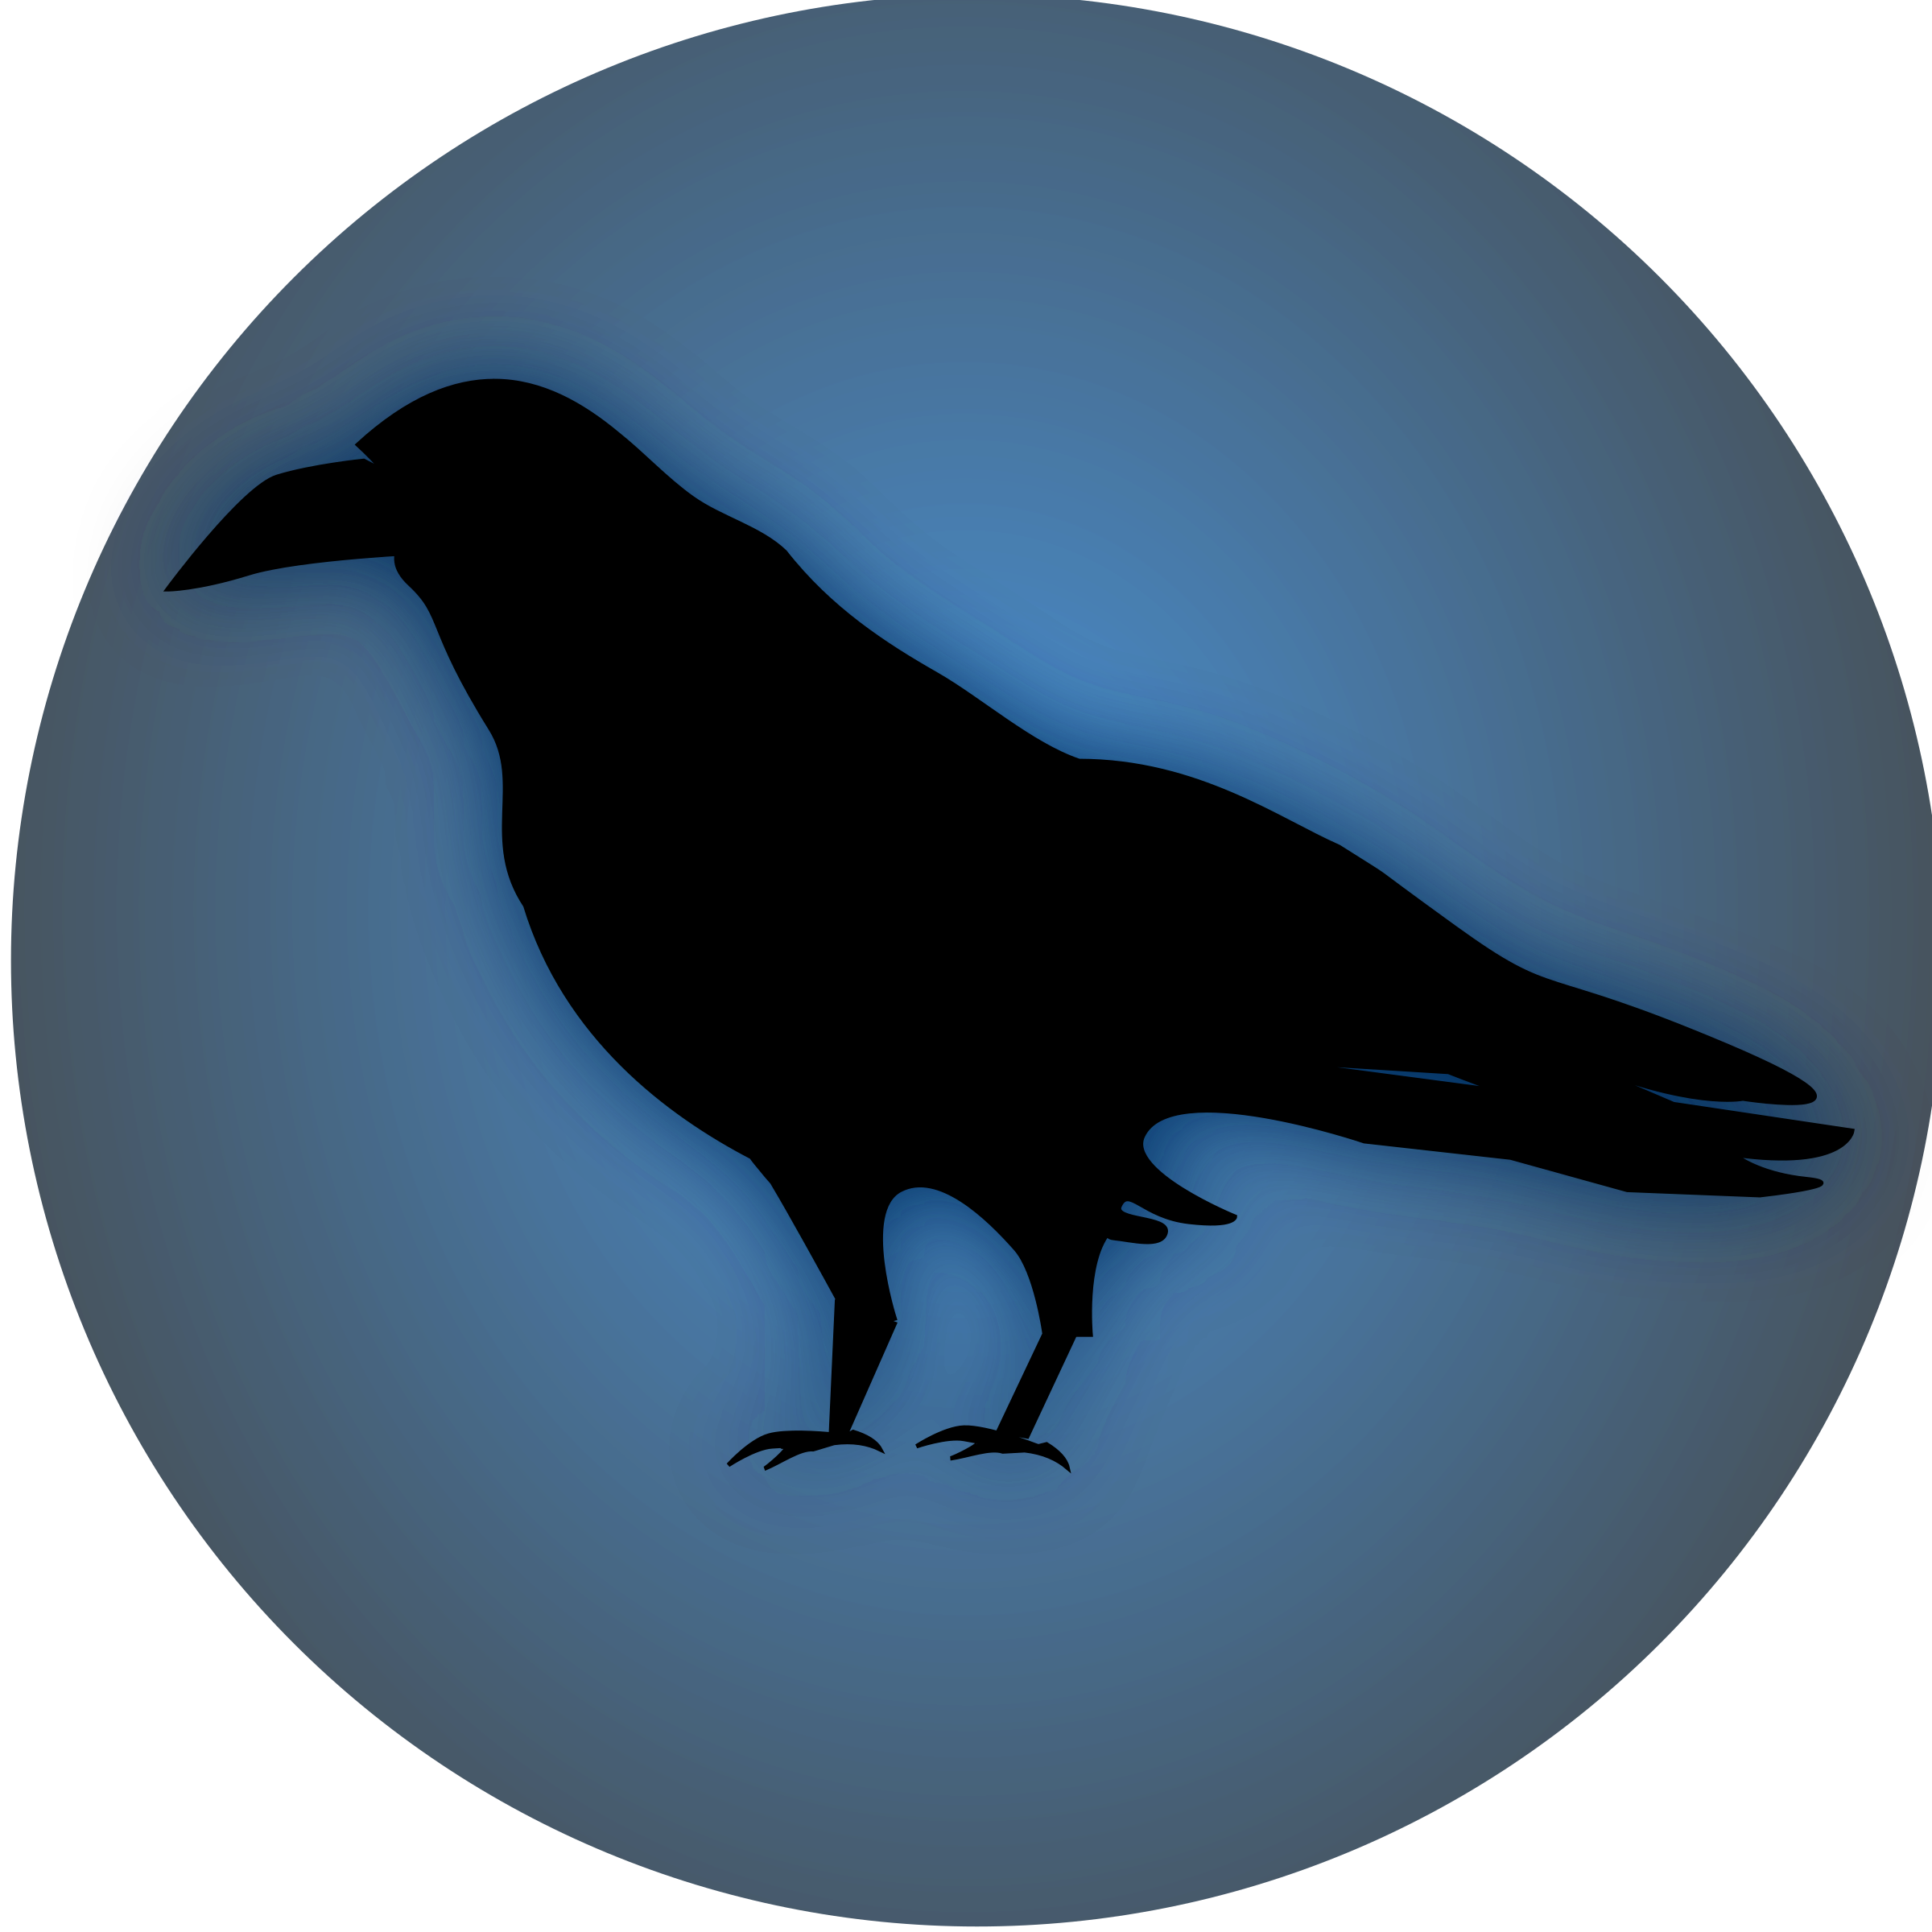 raven icon by netalloy